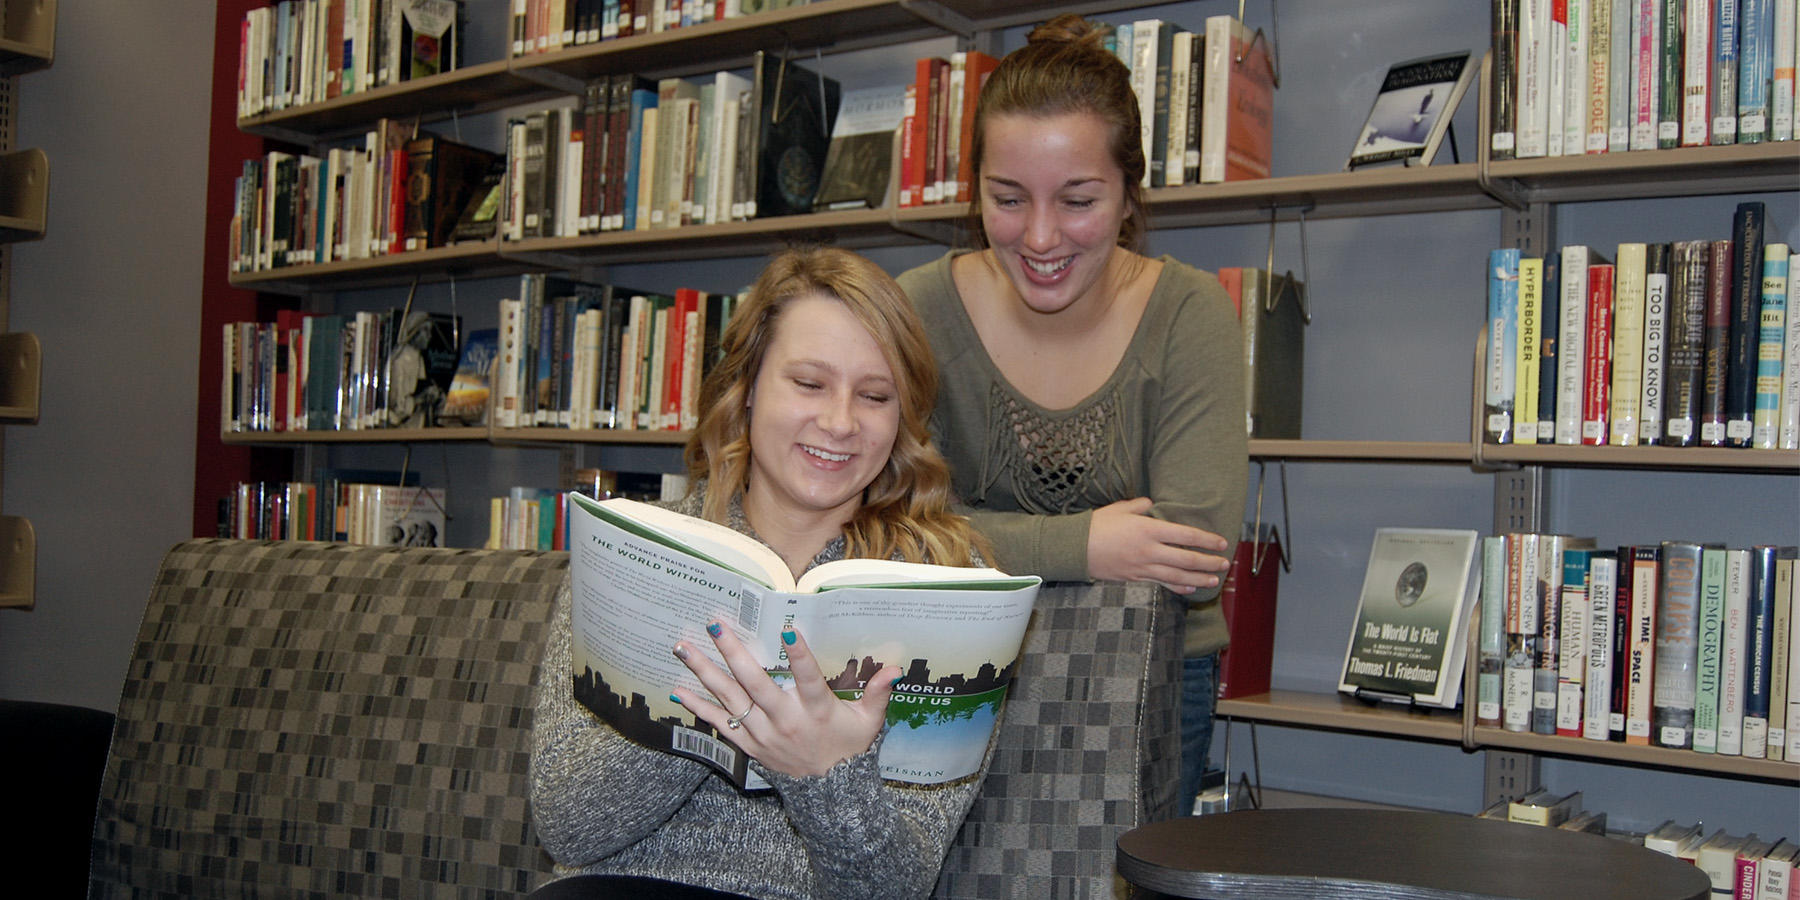 ICC Students Reading in Library